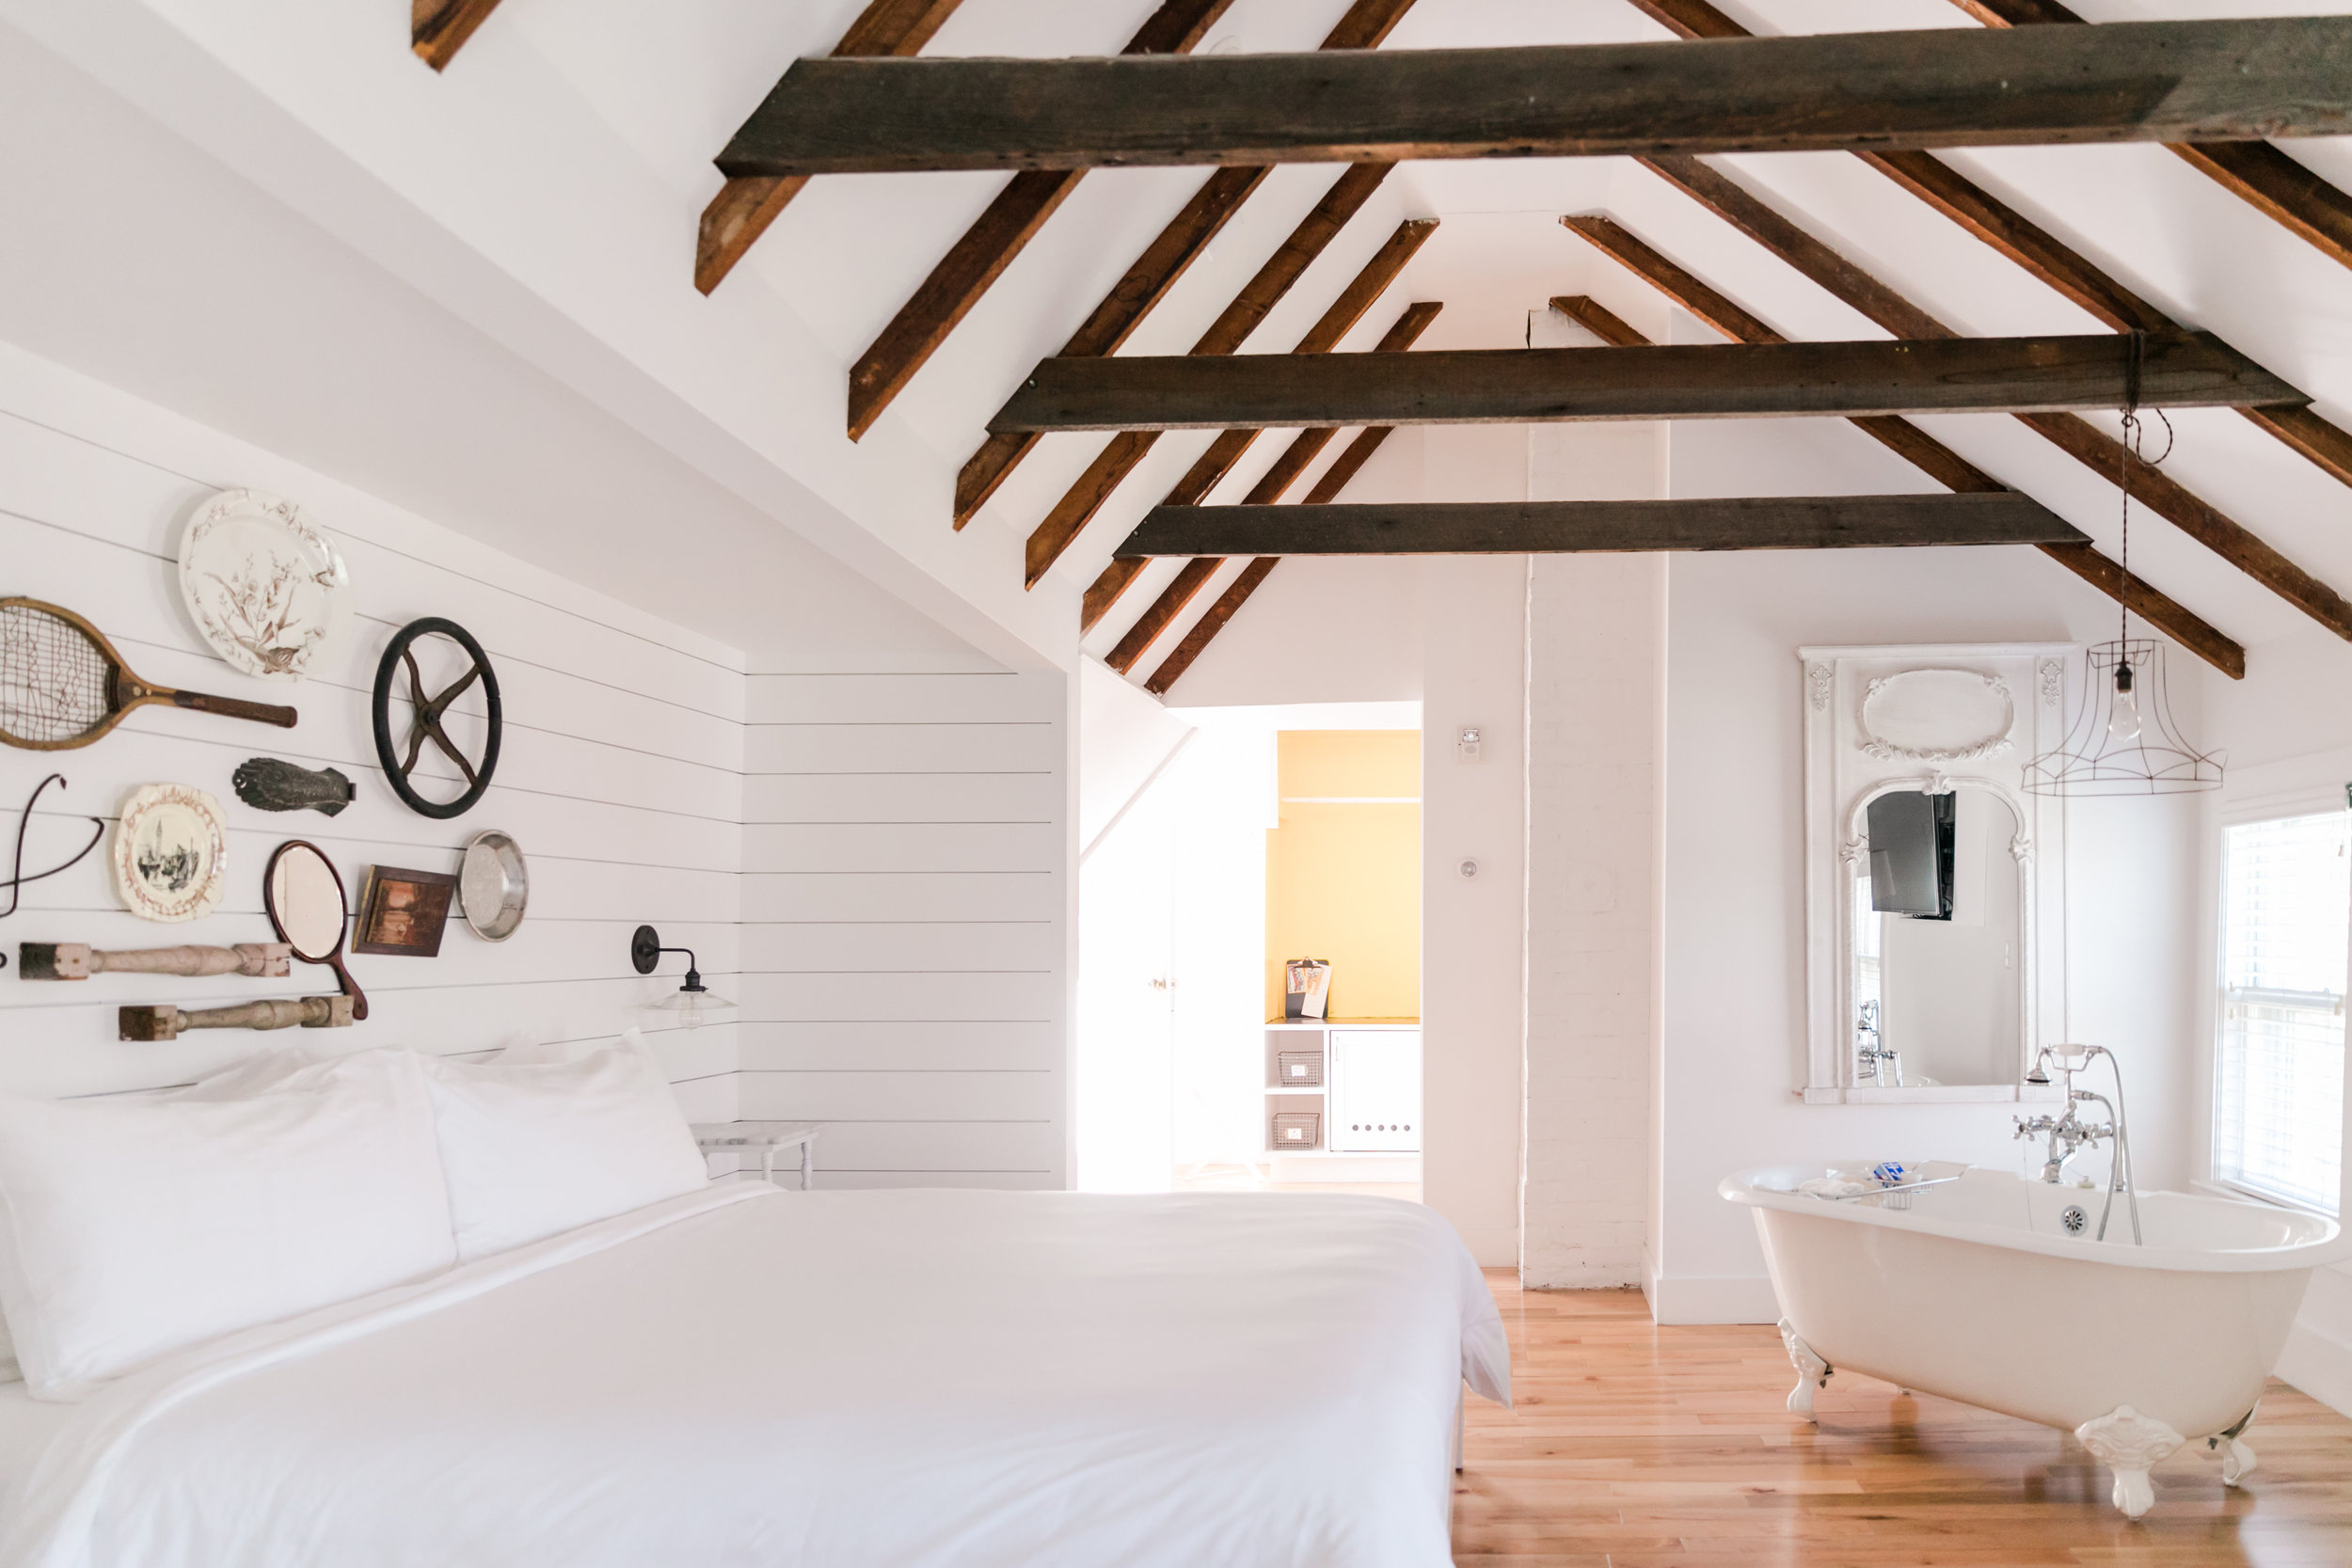 Loft style hotel room with white bed, gallery wall